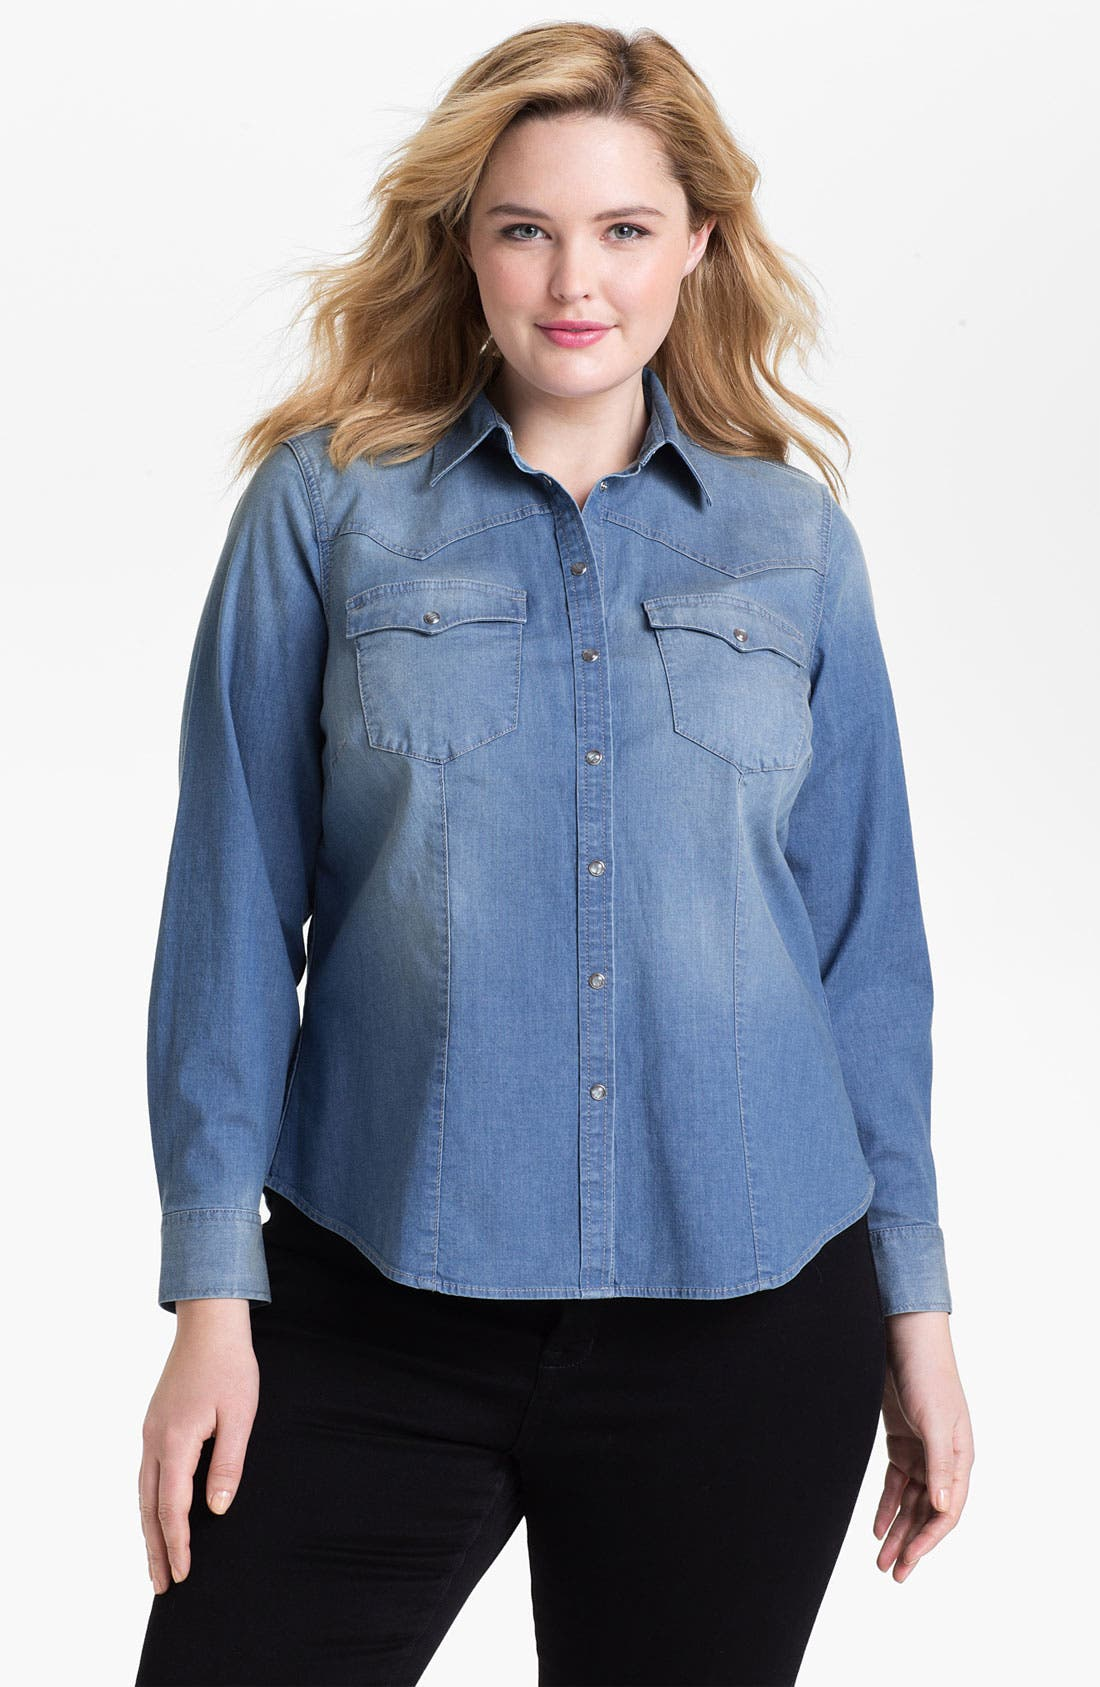 Alternate Image 1 Selected - Two by Vince Camuto Western Denim Shirt (Plus Size)